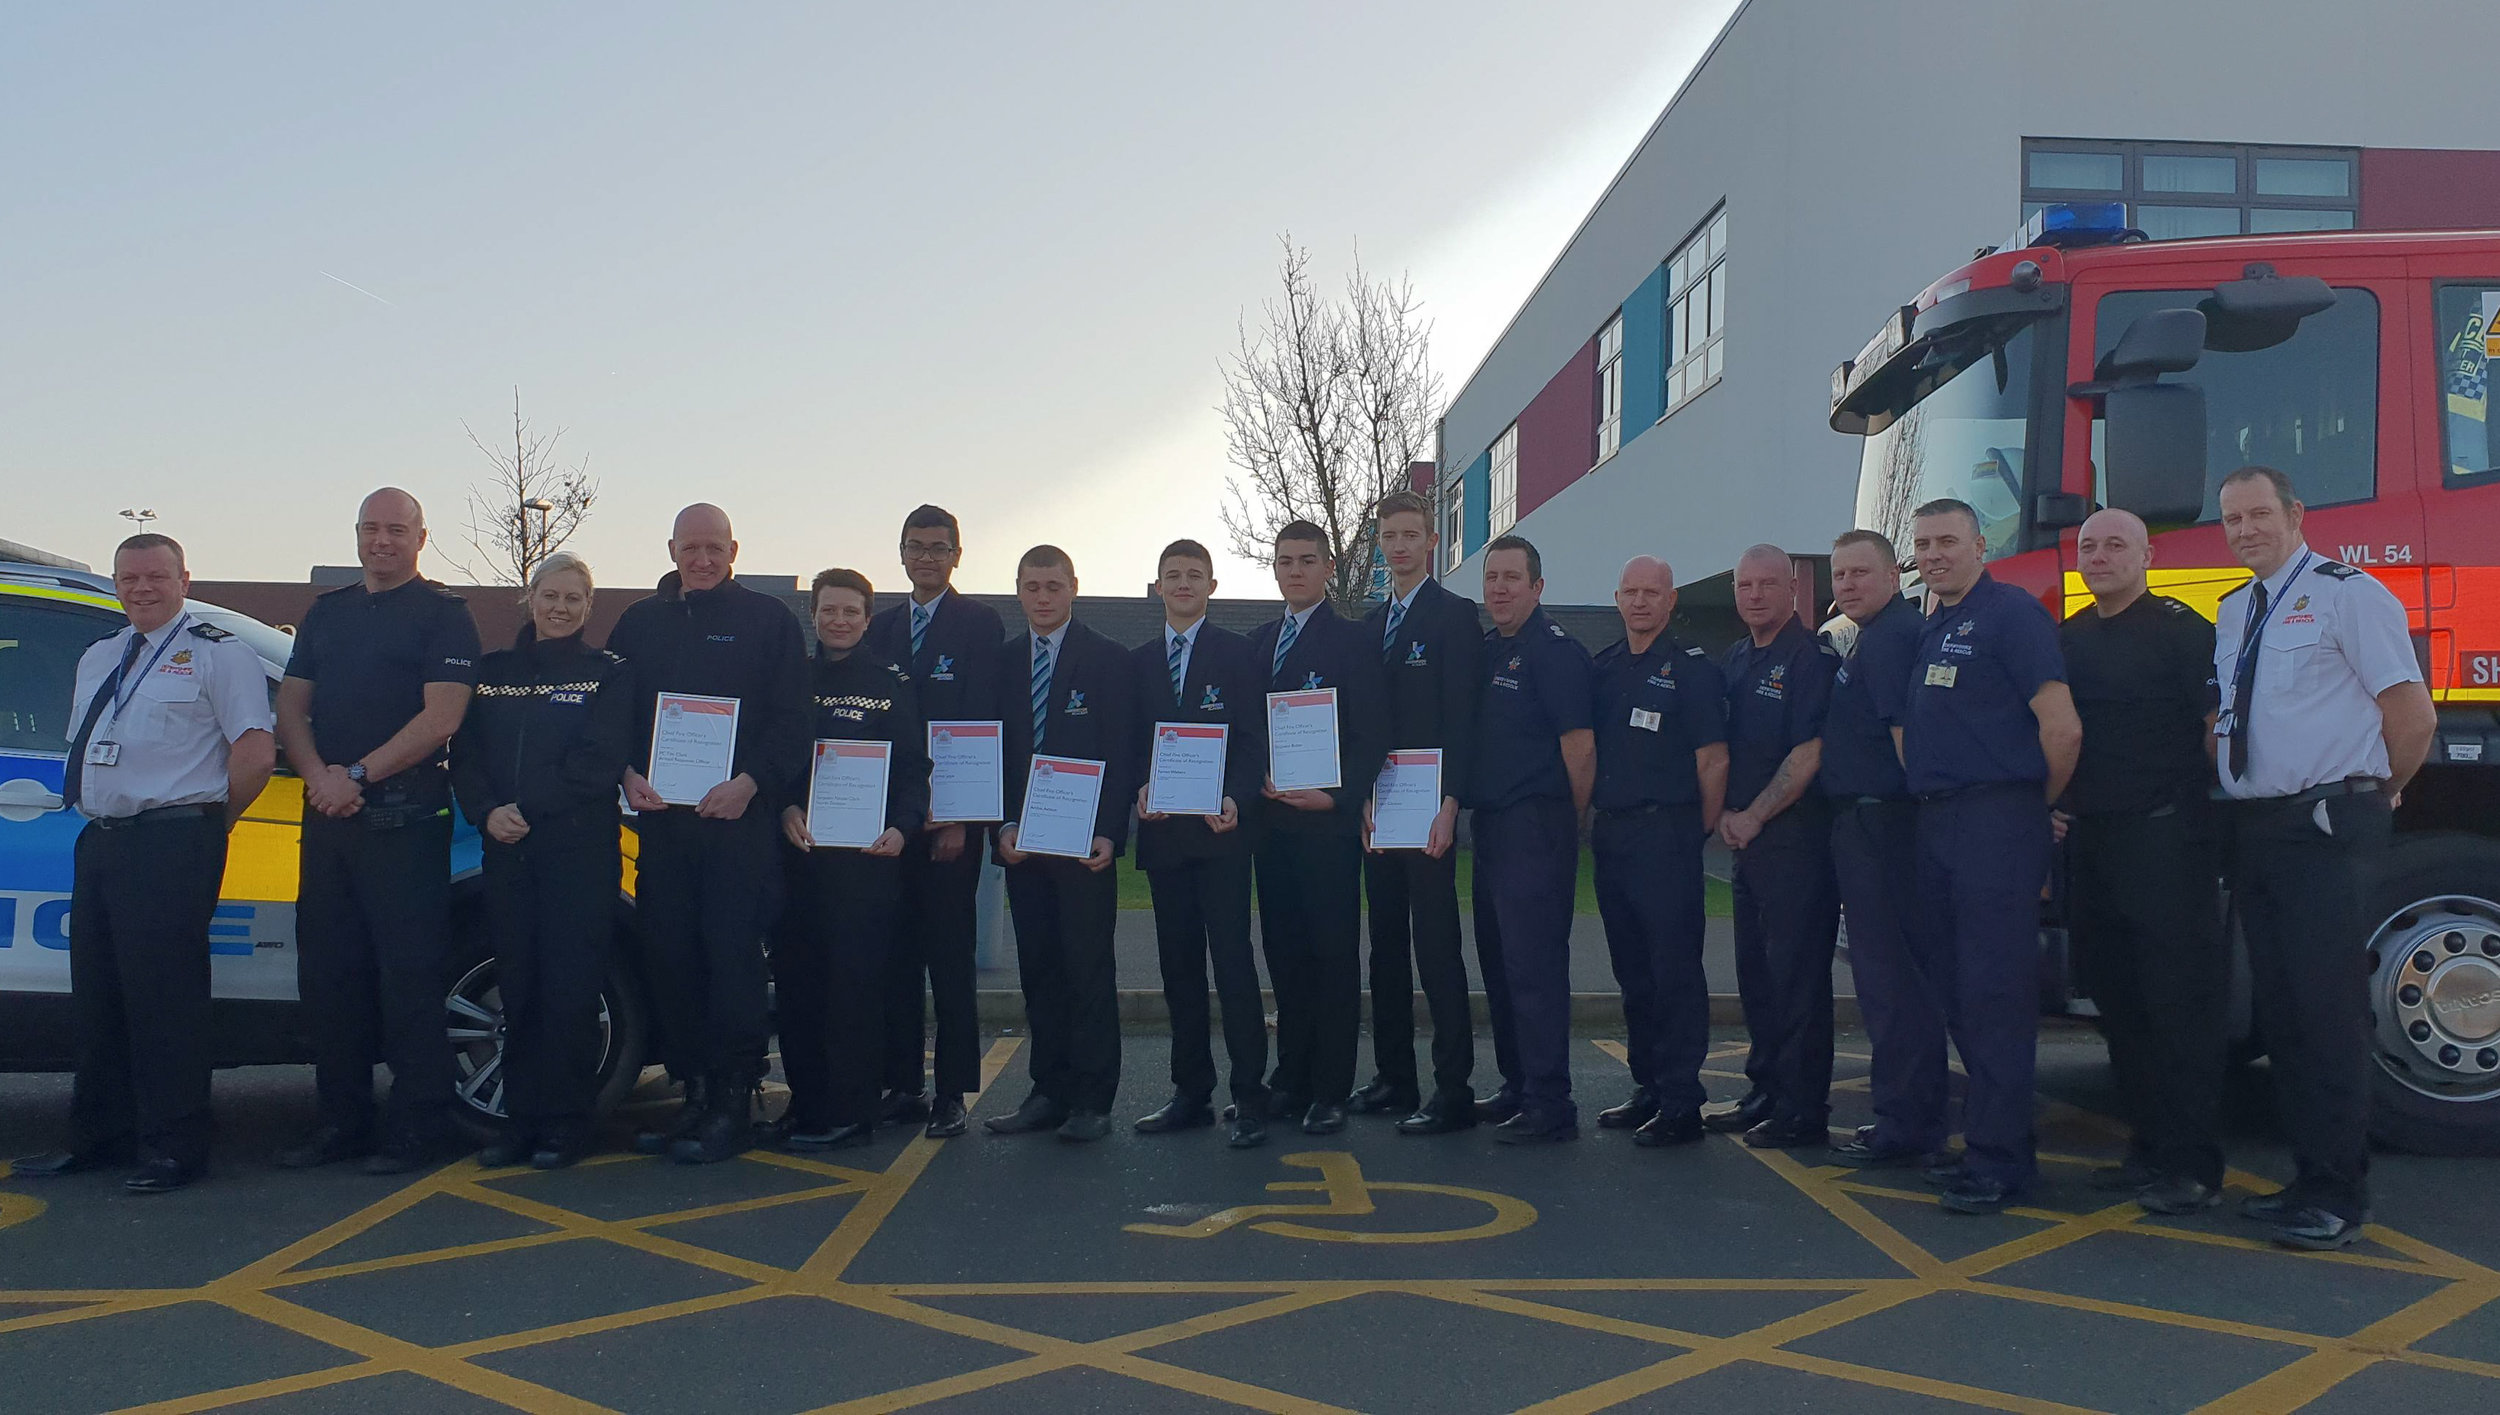 Members of the Derbyshire Police and Derbyshire Fire & Rescue Service with the five teenagers from Shirebrook Academy. Penguin PR: public relations, media and communications.